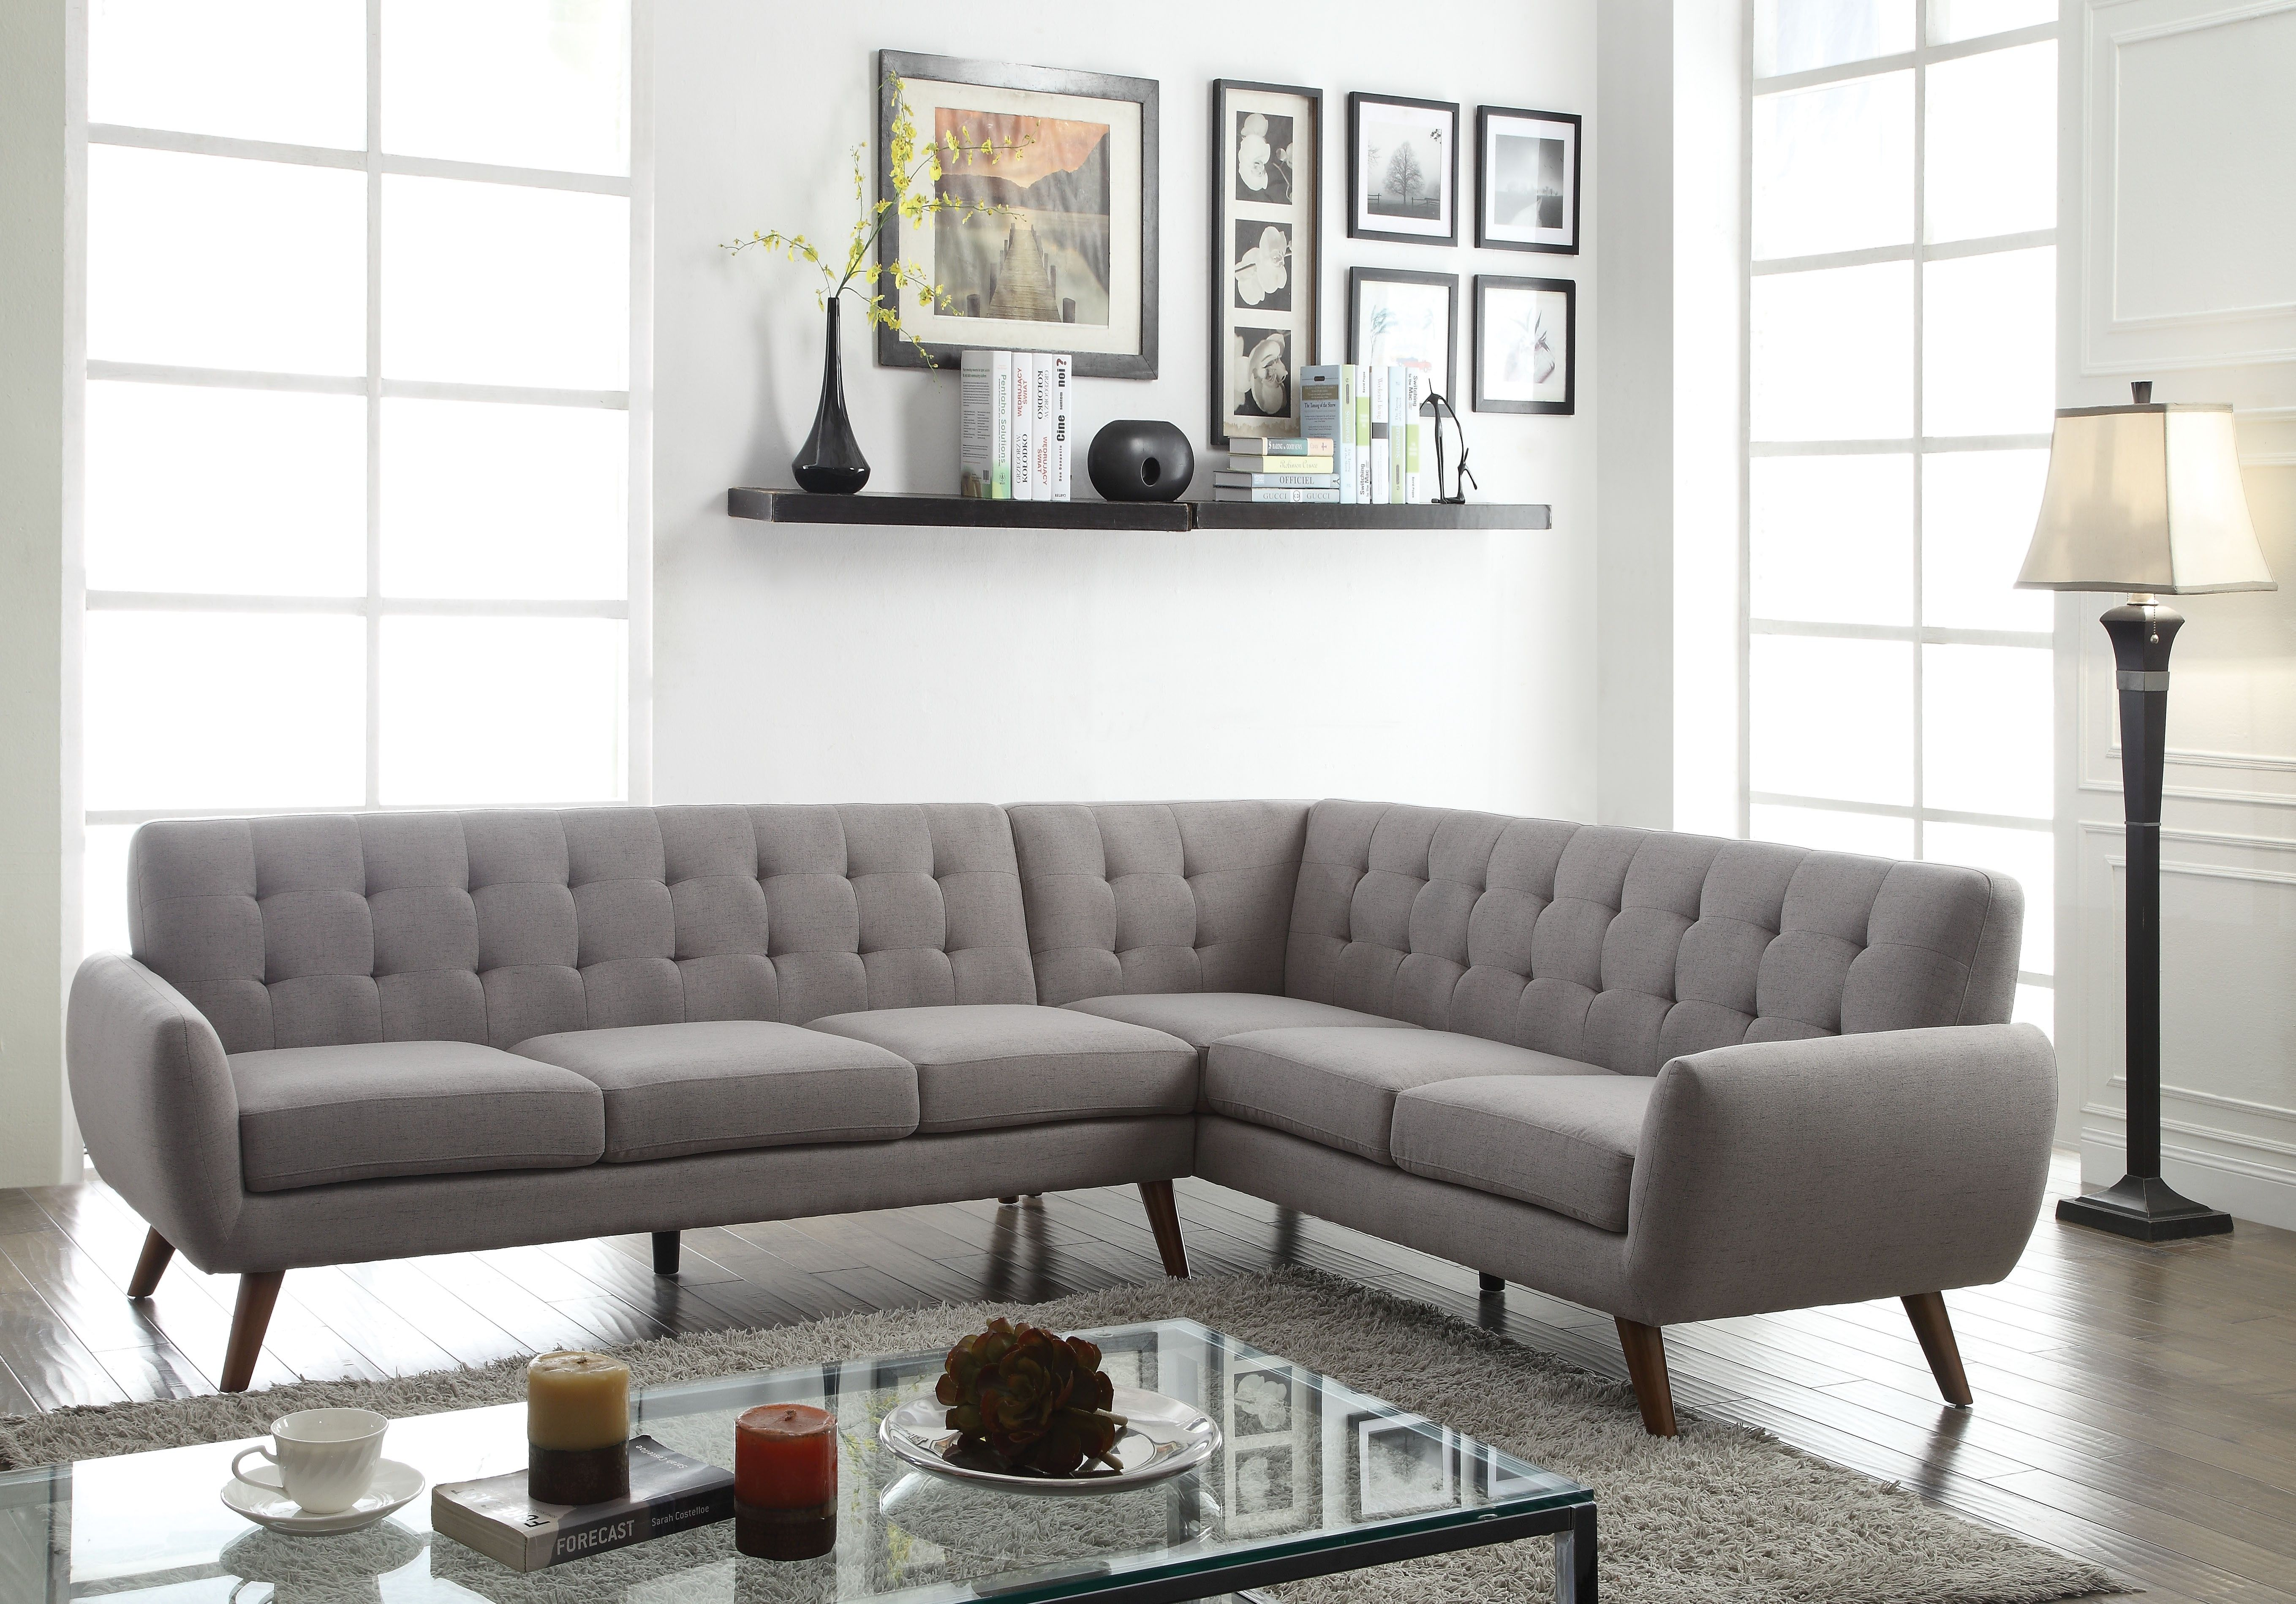 Acme sectional sofa cheny furniturechicago furniture store